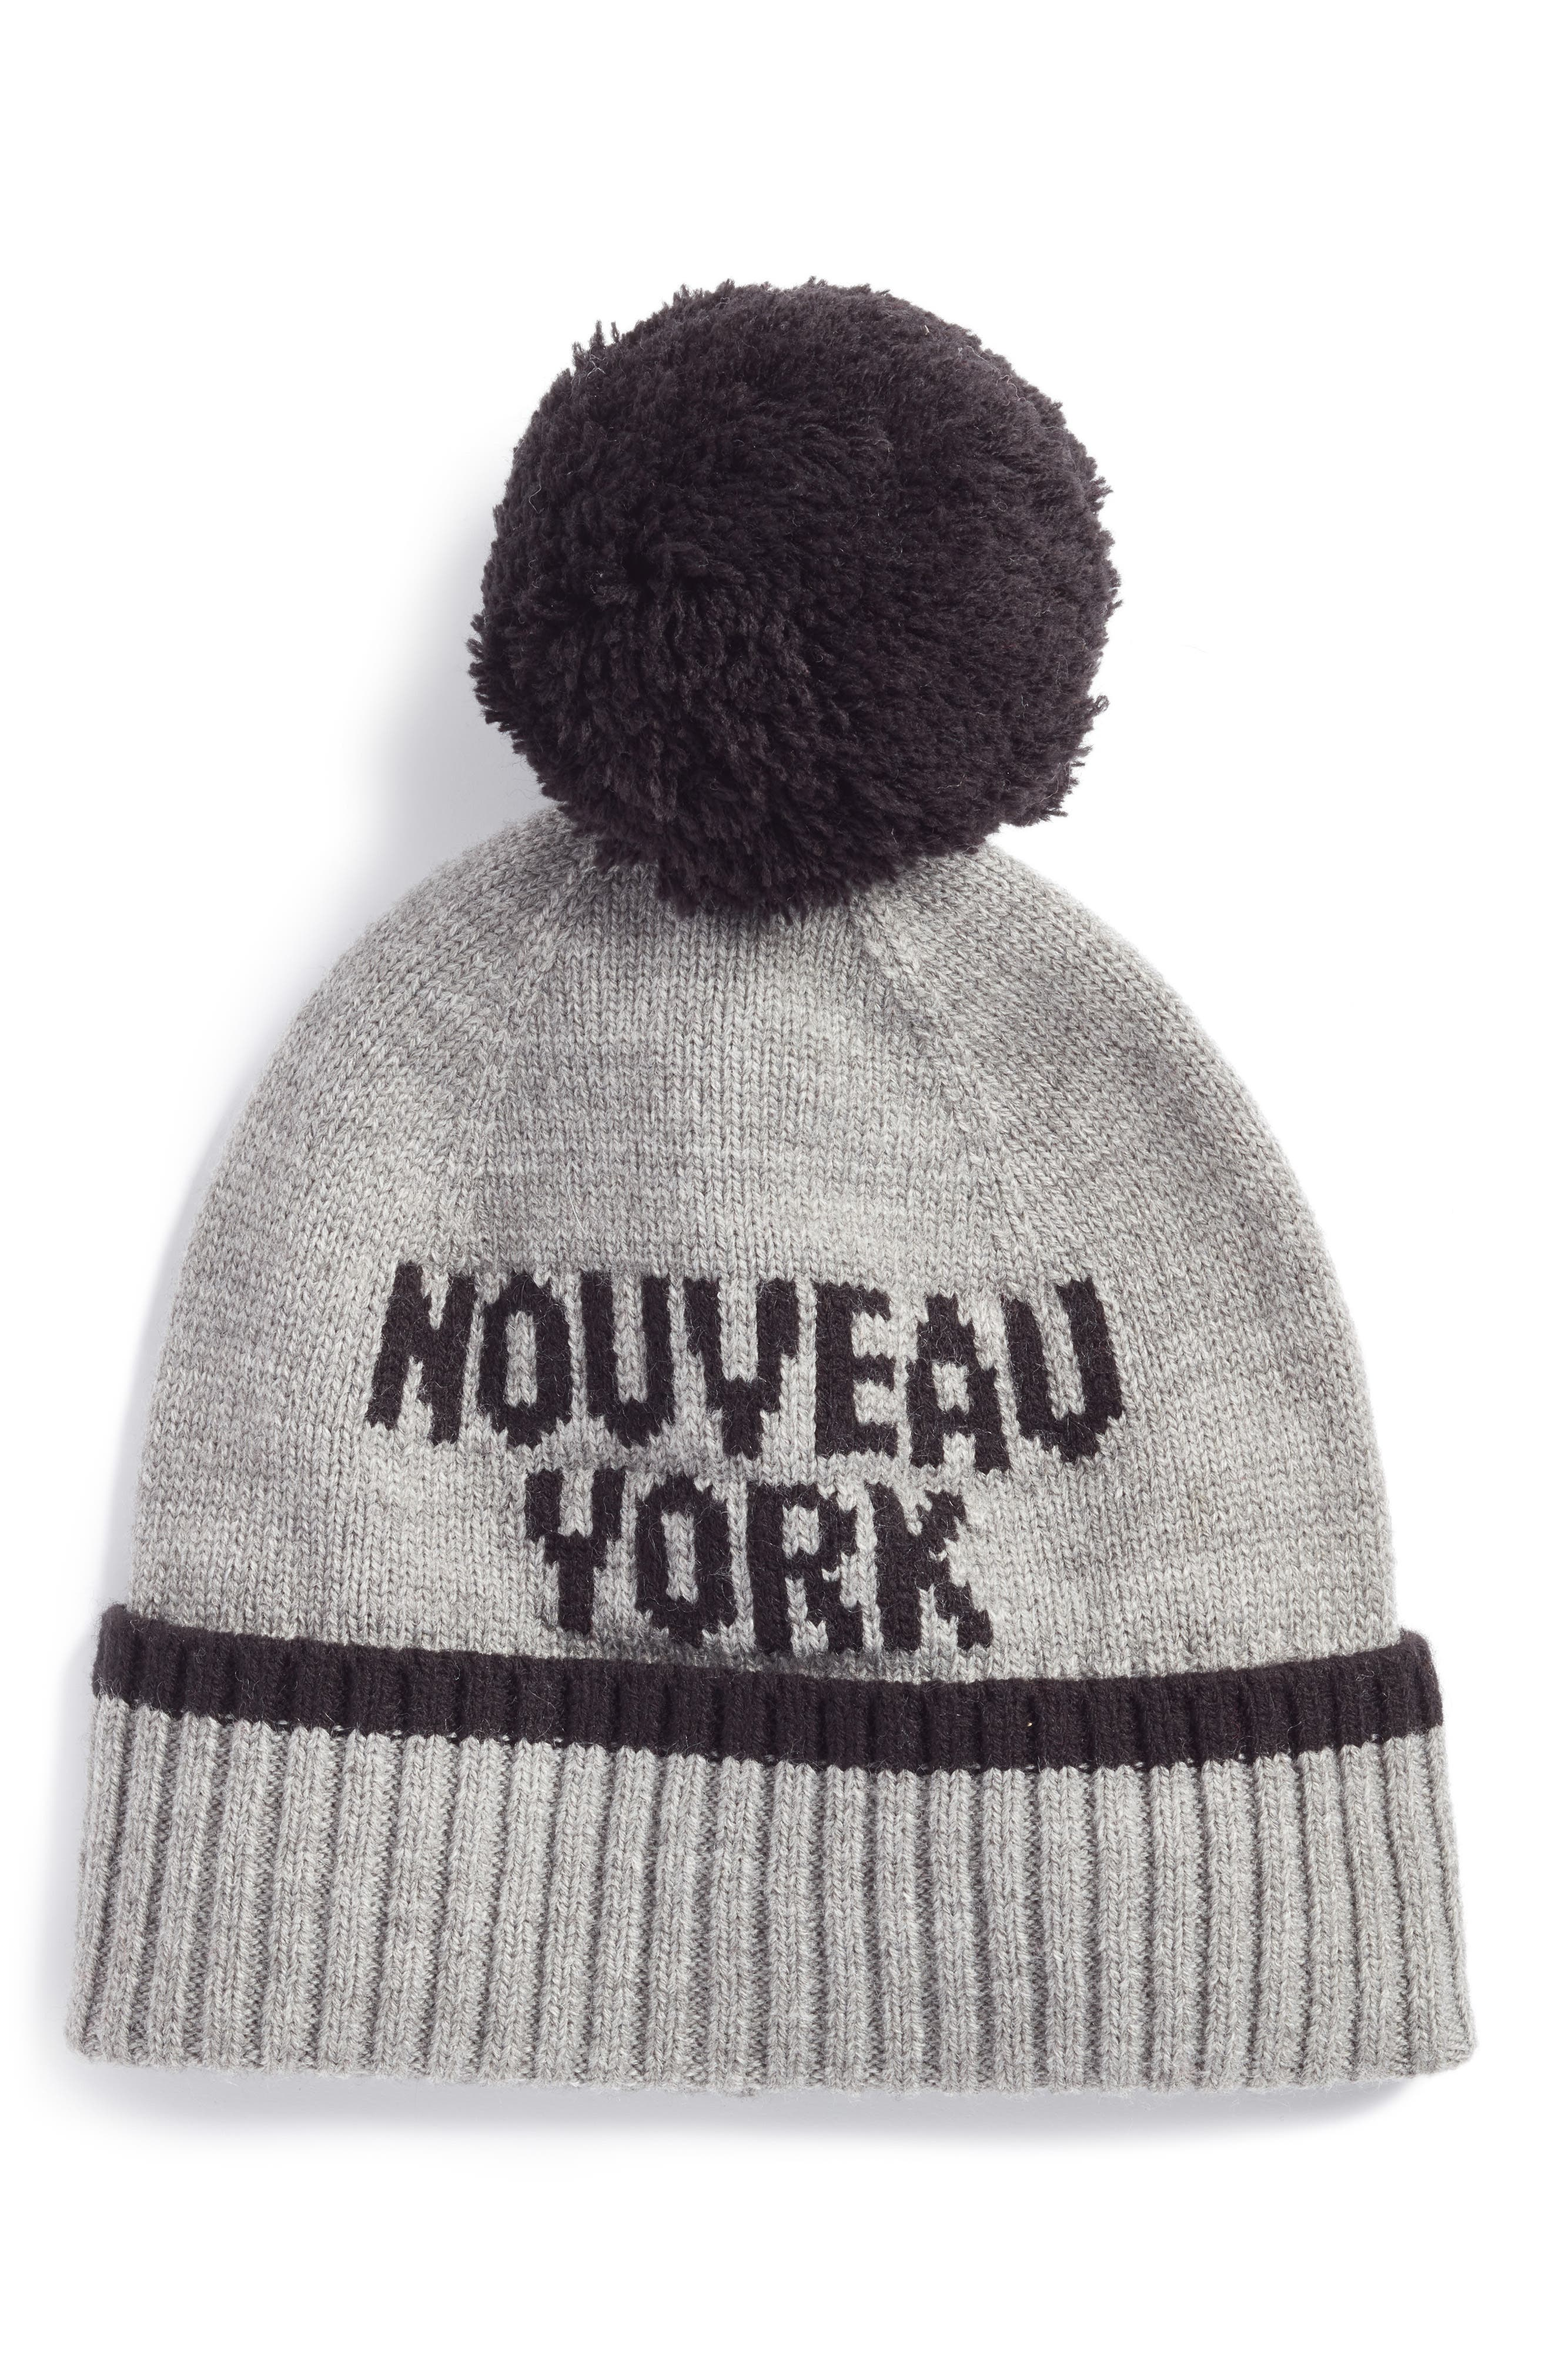 nouveau york pom beanie,                             Main thumbnail 1, color,                             Heather Gray/ Black